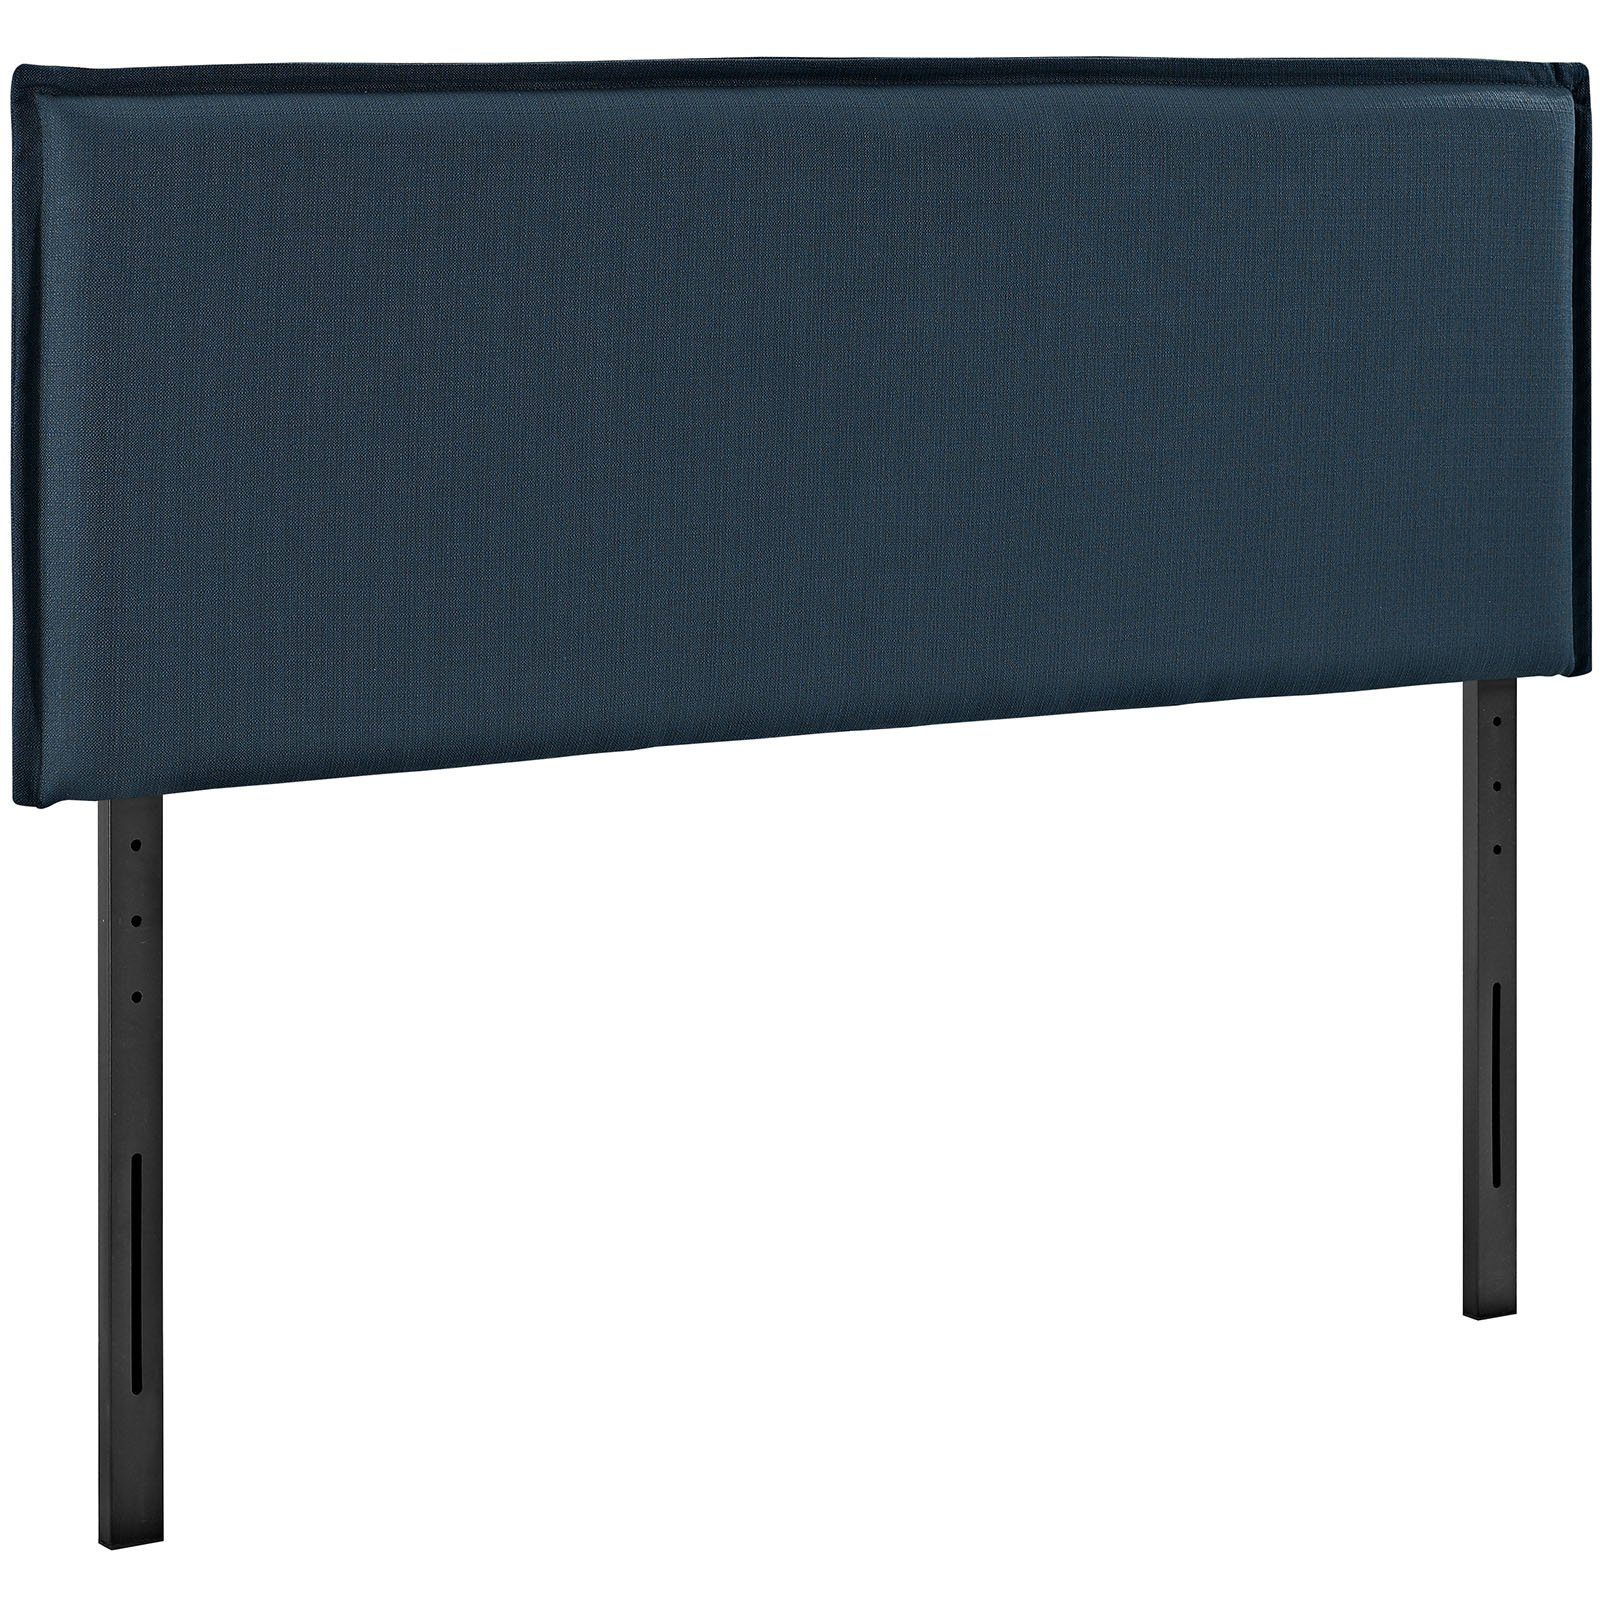 Modway Camille Queen Upholstered Fabric Headboard in Azure